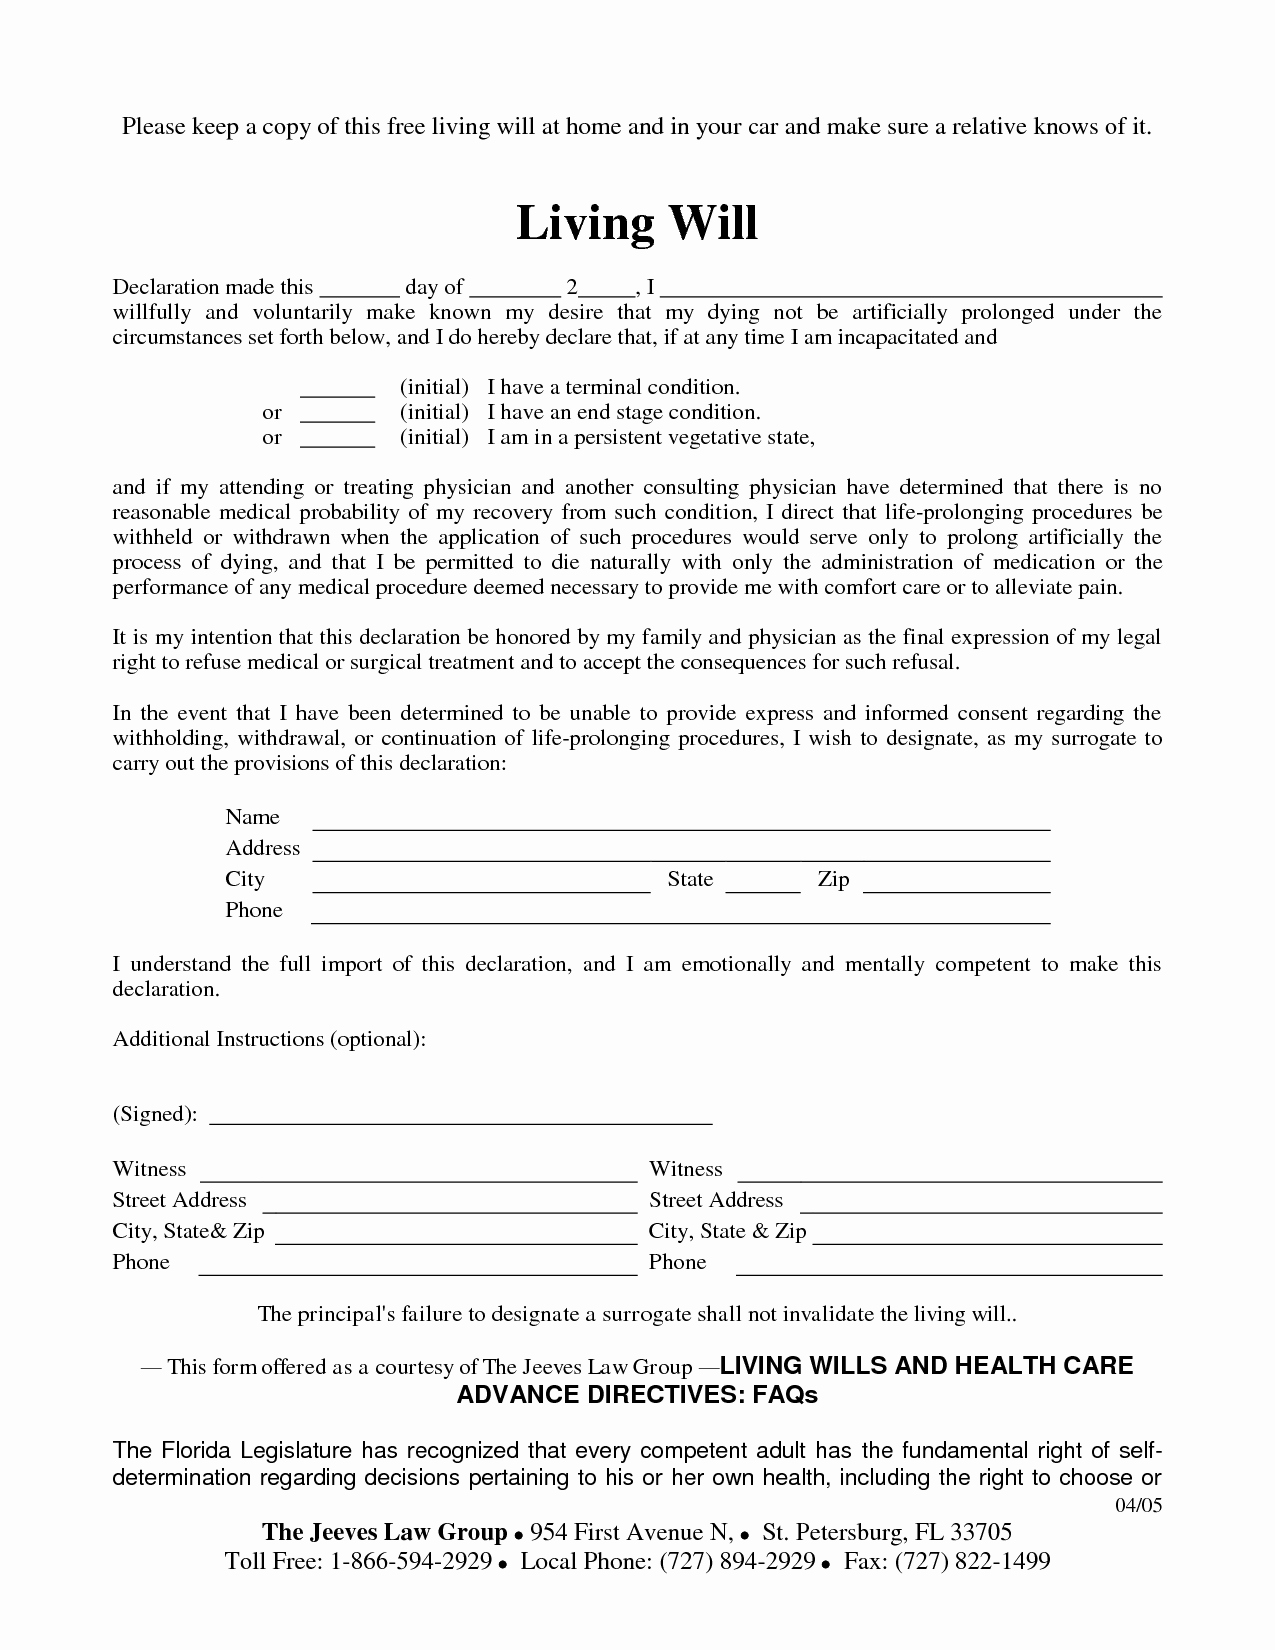 Living Will Template Pdf New Free Copy Of Living Will by Richard Cataman Living Will